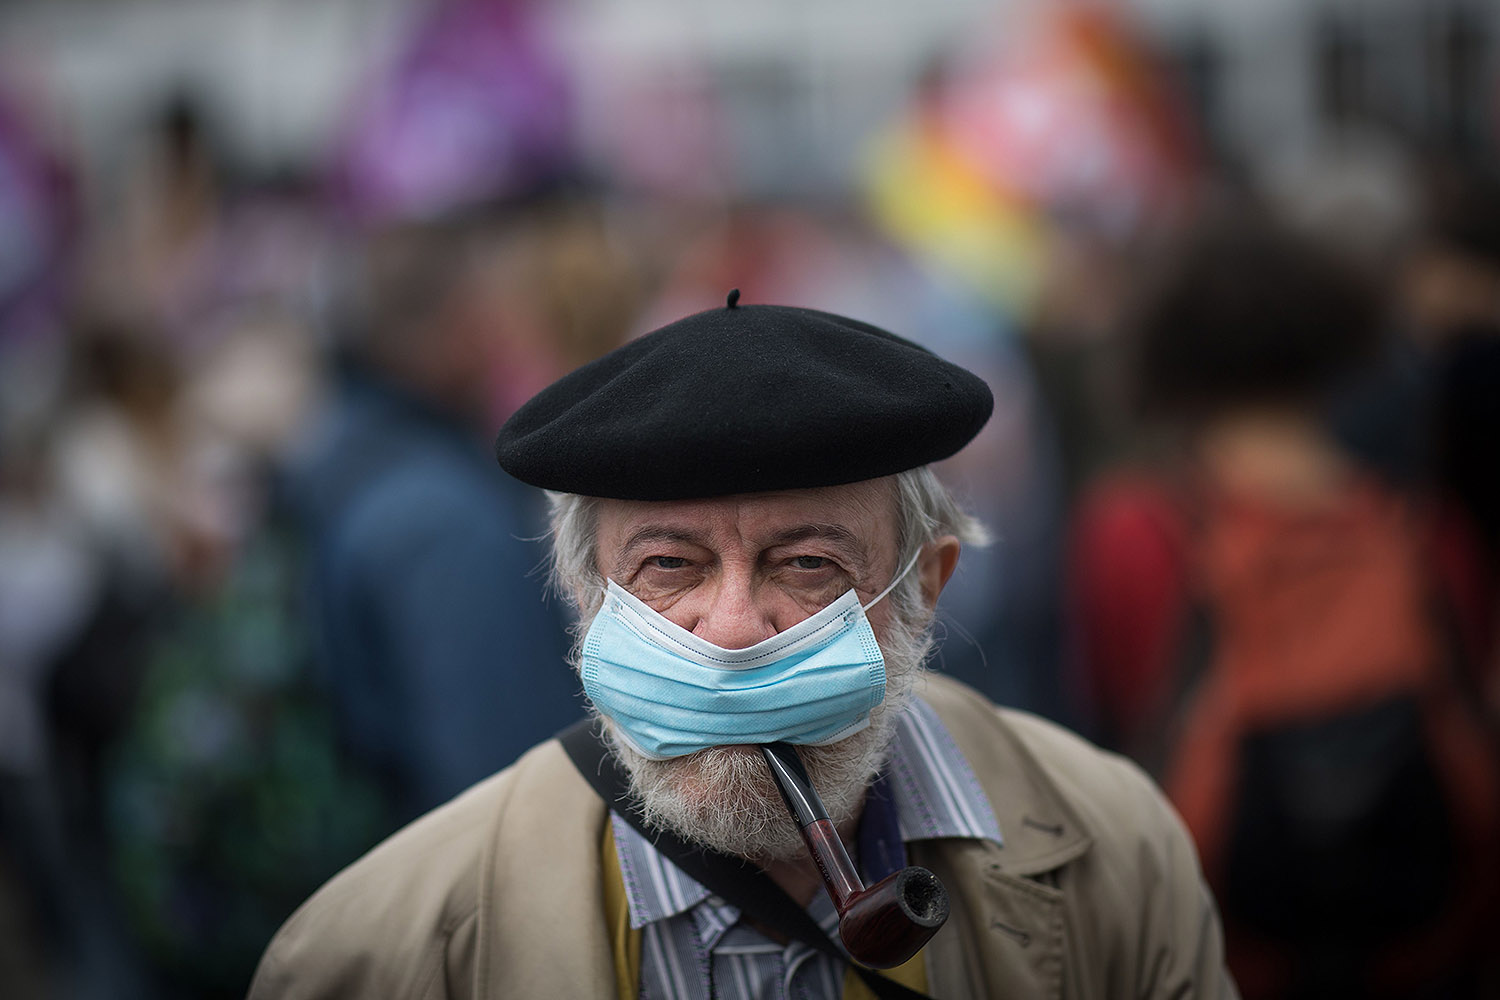 This determination (while meeting COVID protocol). A man smokes a pipe while wearing a face mask during a demonstration in Nantes, France, on June 30 as part of a nationwide day of protests to demand better working conditions for health care workers. LOIC VENANCE/AFP via Getty Images